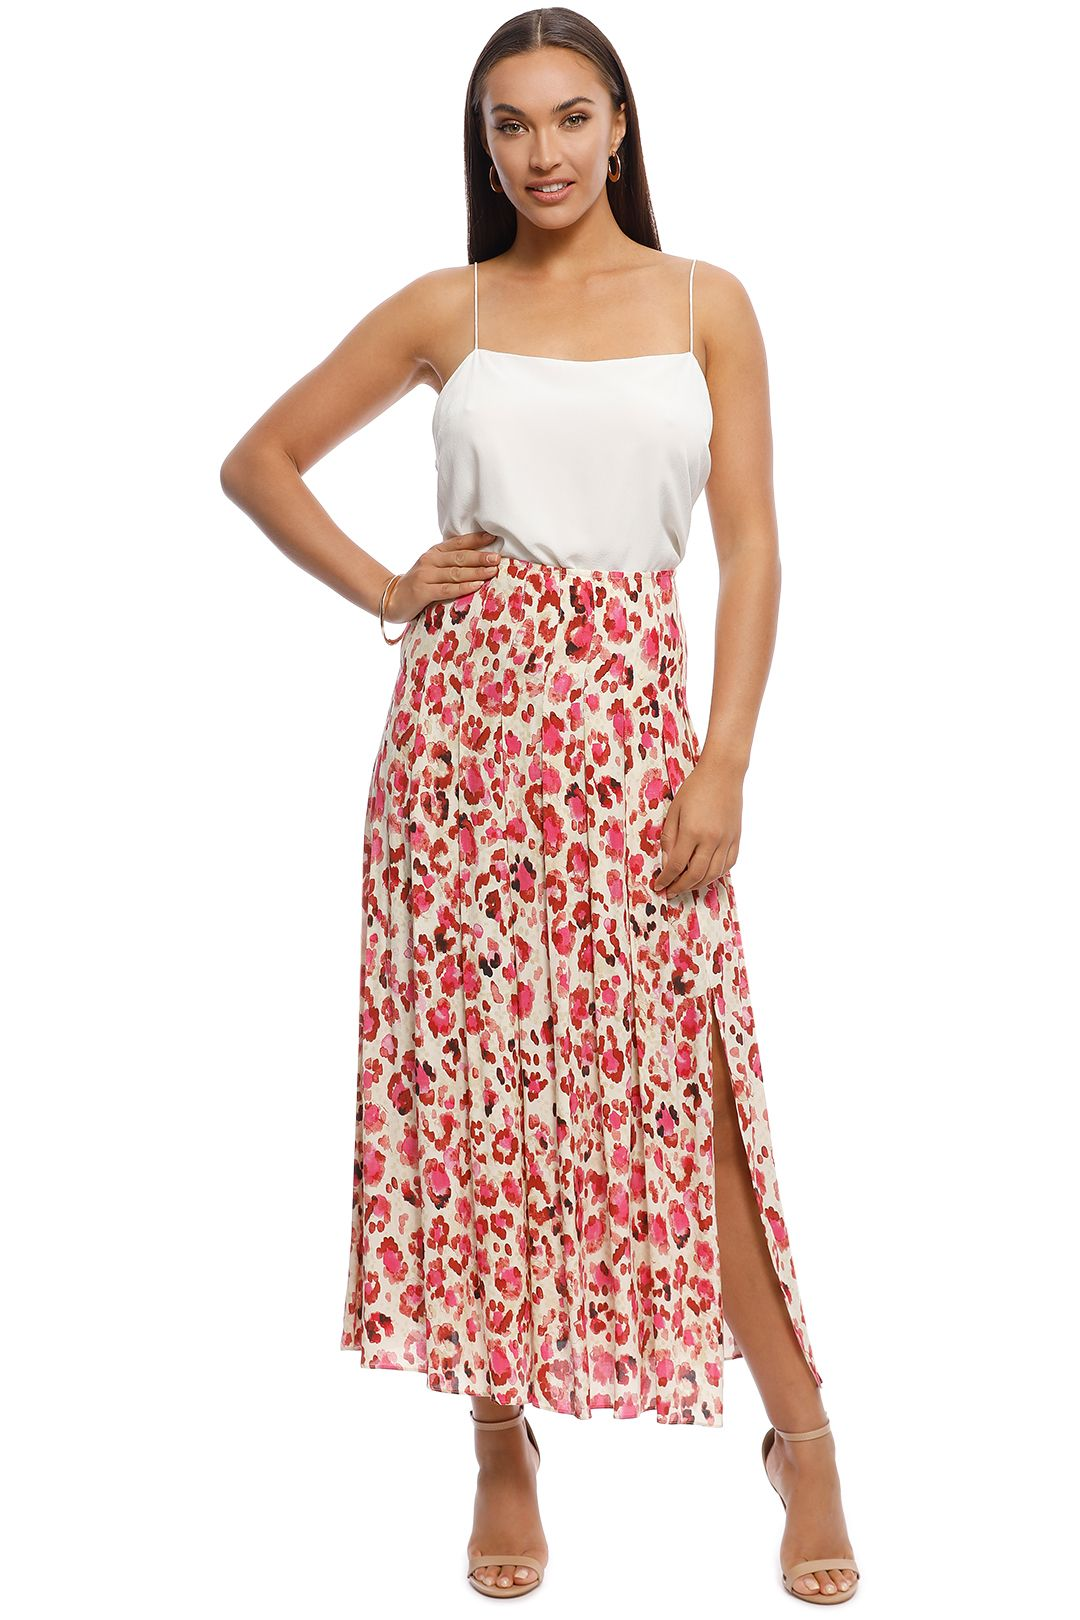 MNG - Elea Printed Midi Skirt - Pink - Front